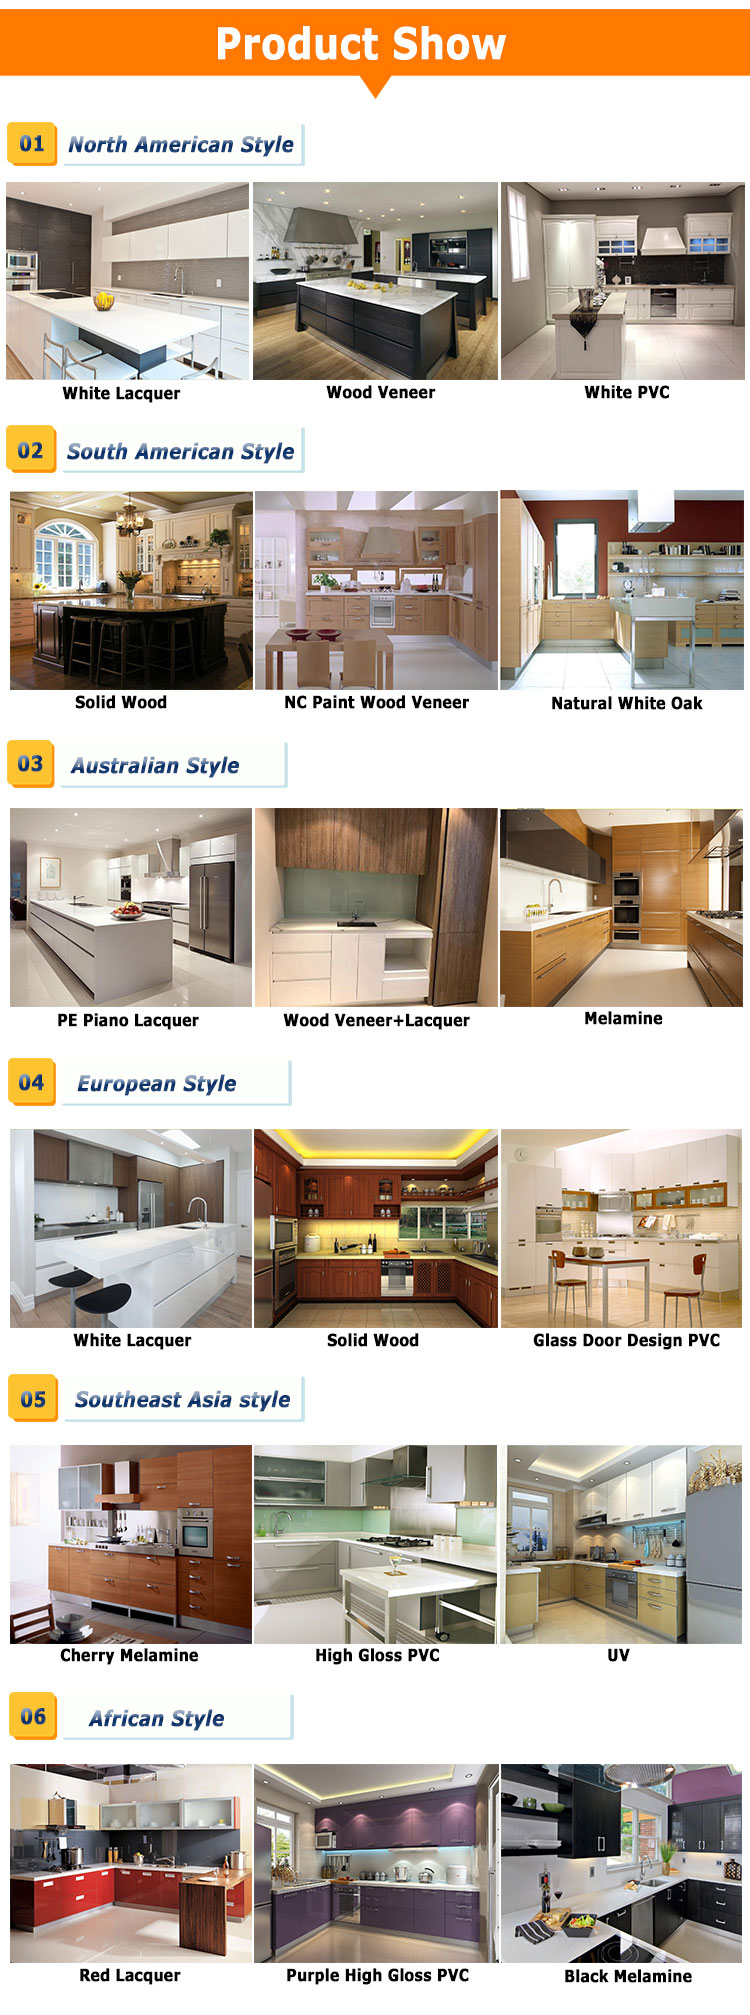 Project Cheap Price High Quality Free Used Kitchen Cabinets Craigslist View Used Kitchen Cabinets Craigslist Vc Cucine Product Details From Foshan Yajiasi Kitchen Cabinet Co Ltd On Alibaba Com